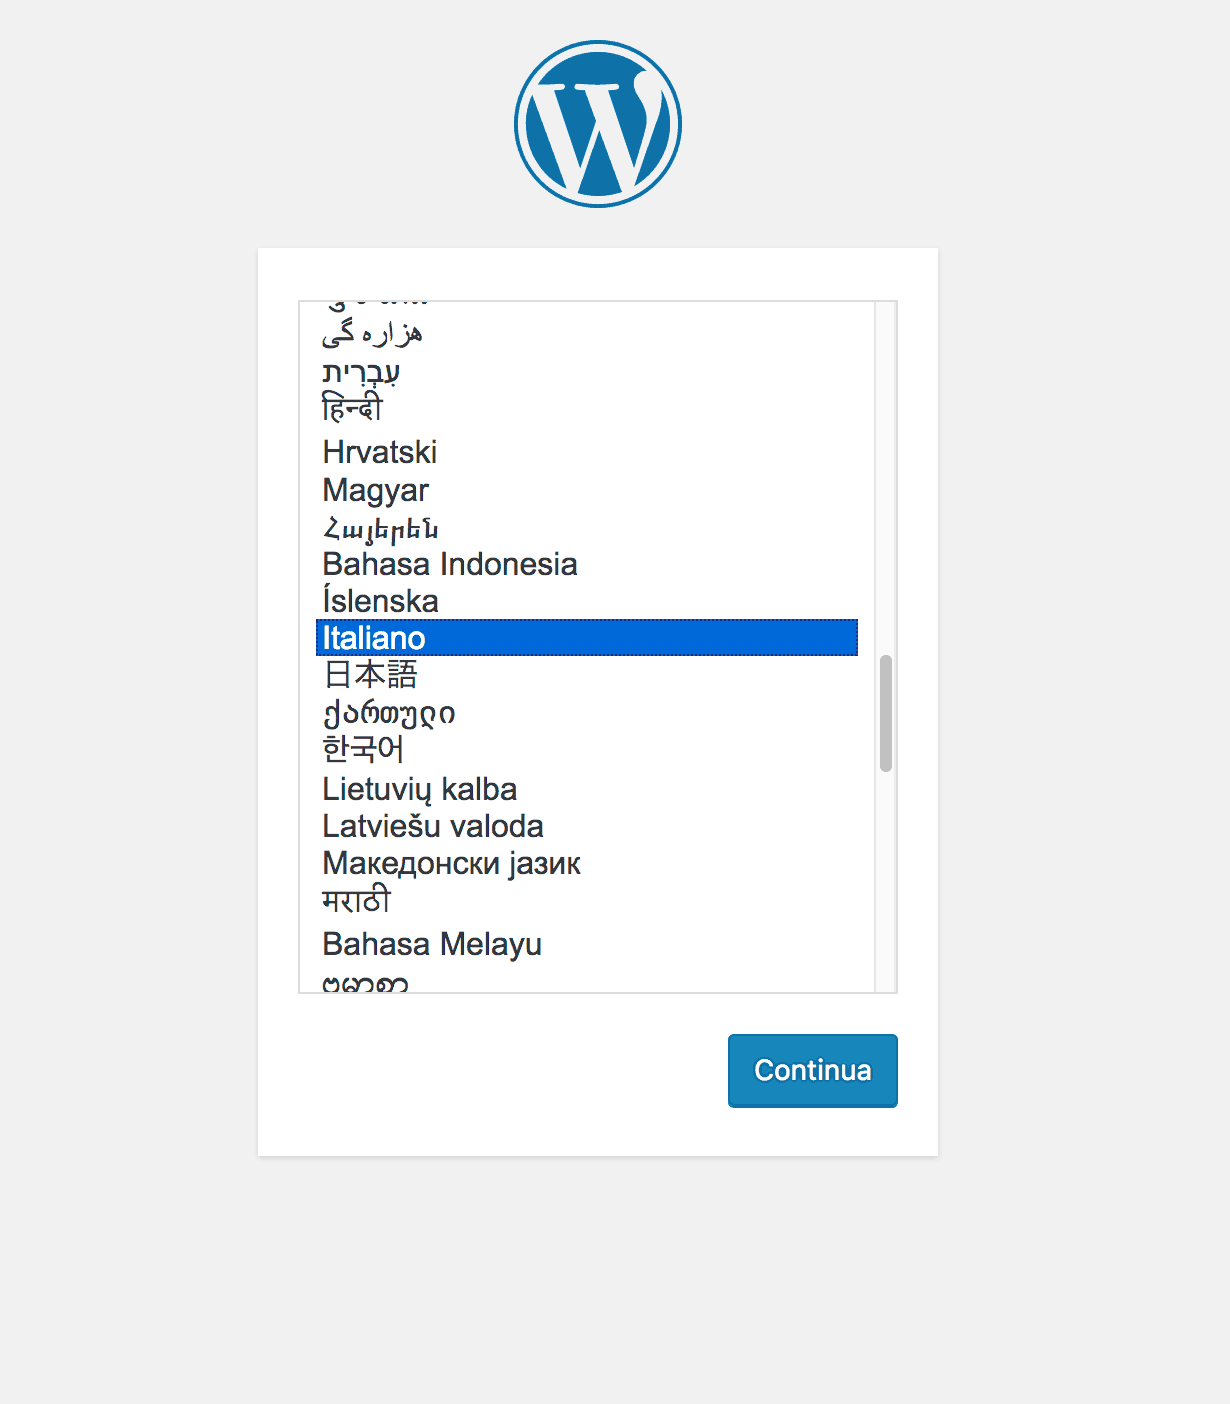 come installare wordpress su aruba cloud